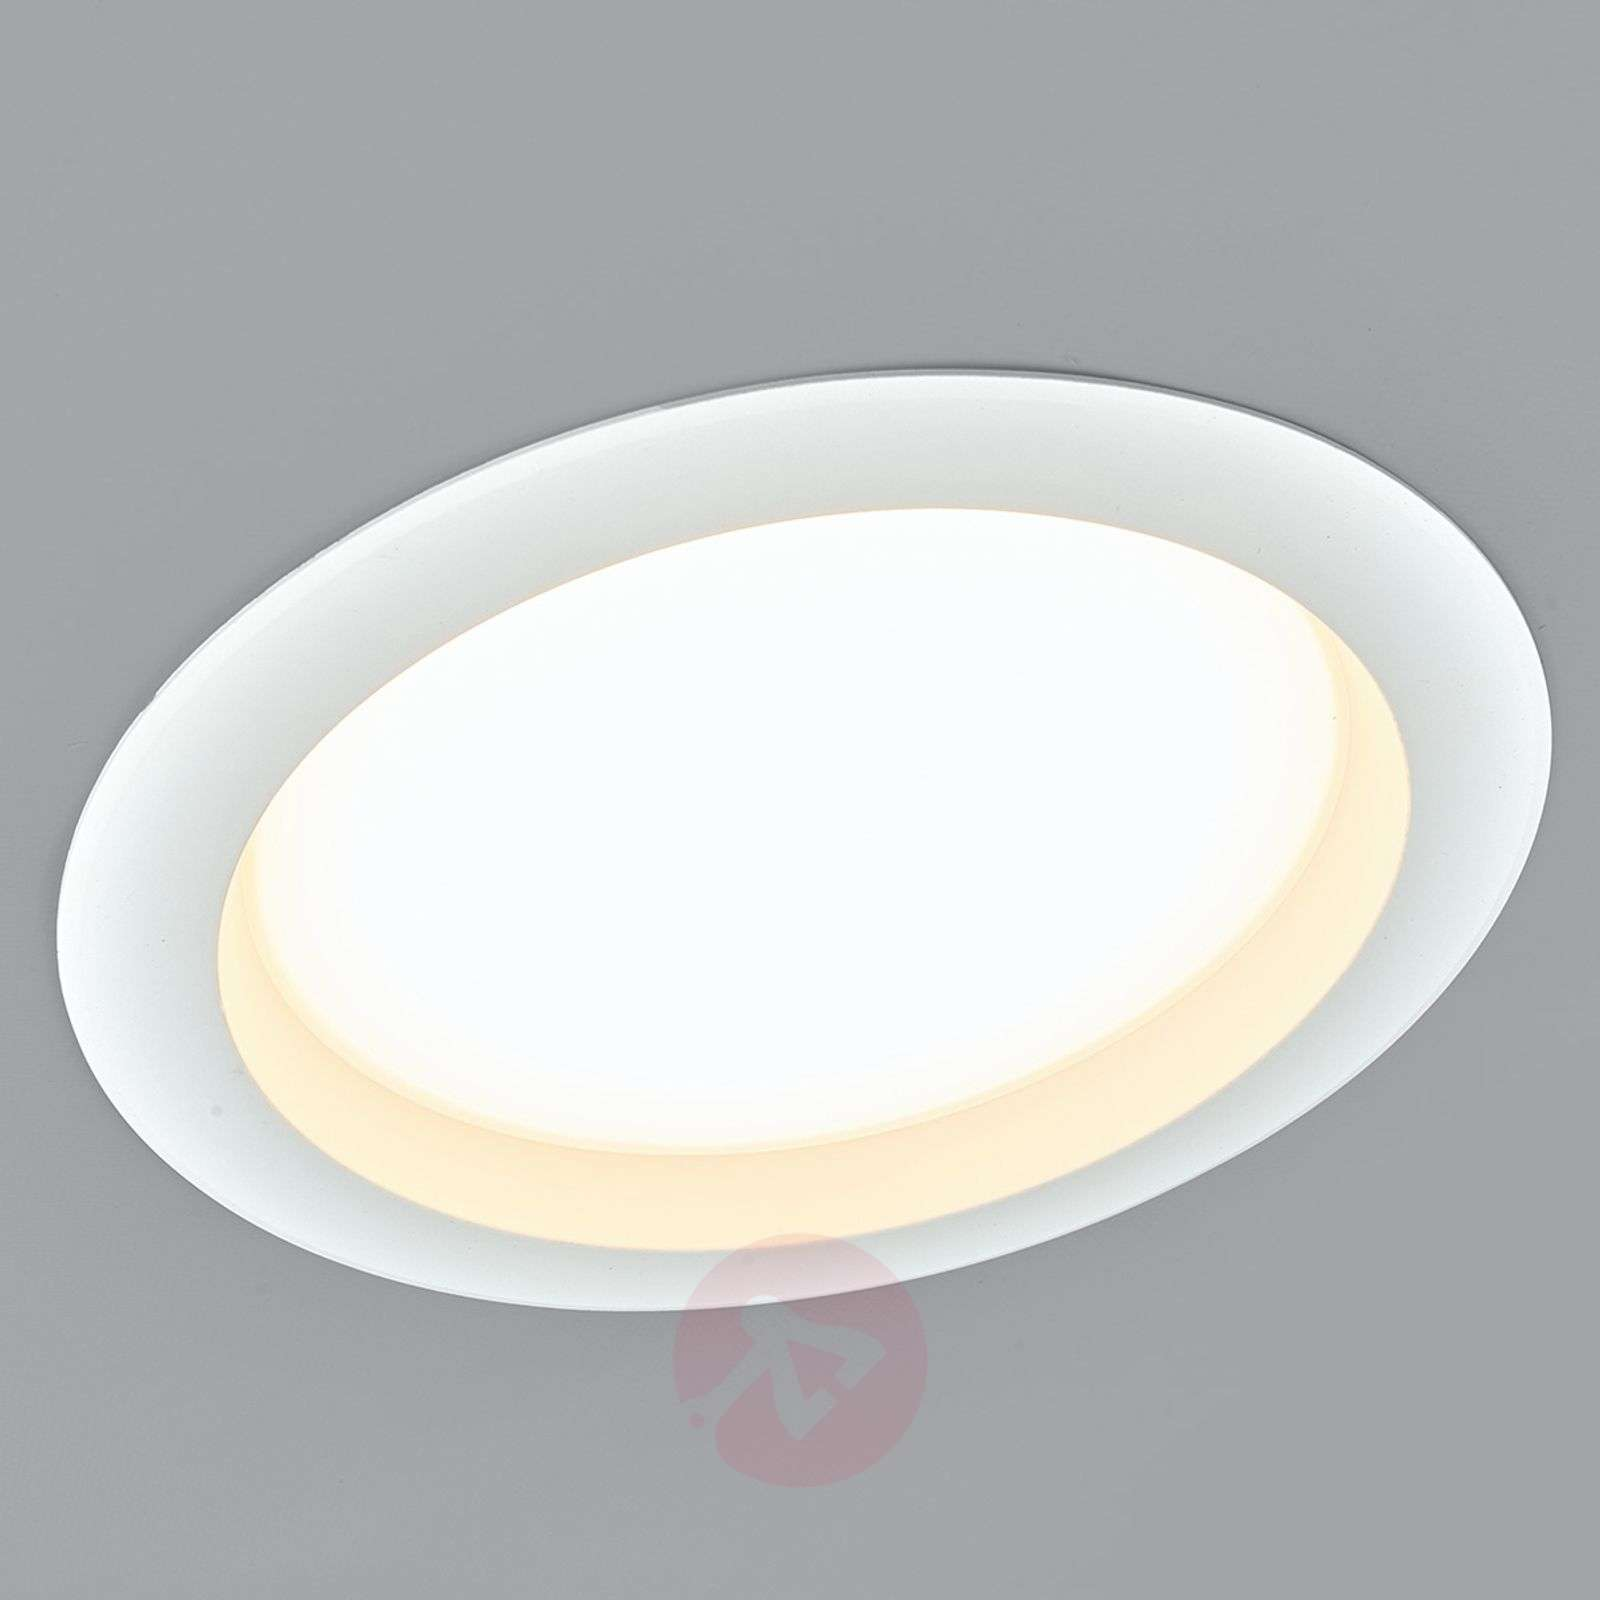 Large led recessed spotlight arian 244 cm 225w lights large led recessed spotlight arian 244 cm 225w 9978012 04 aloadofball Image collections